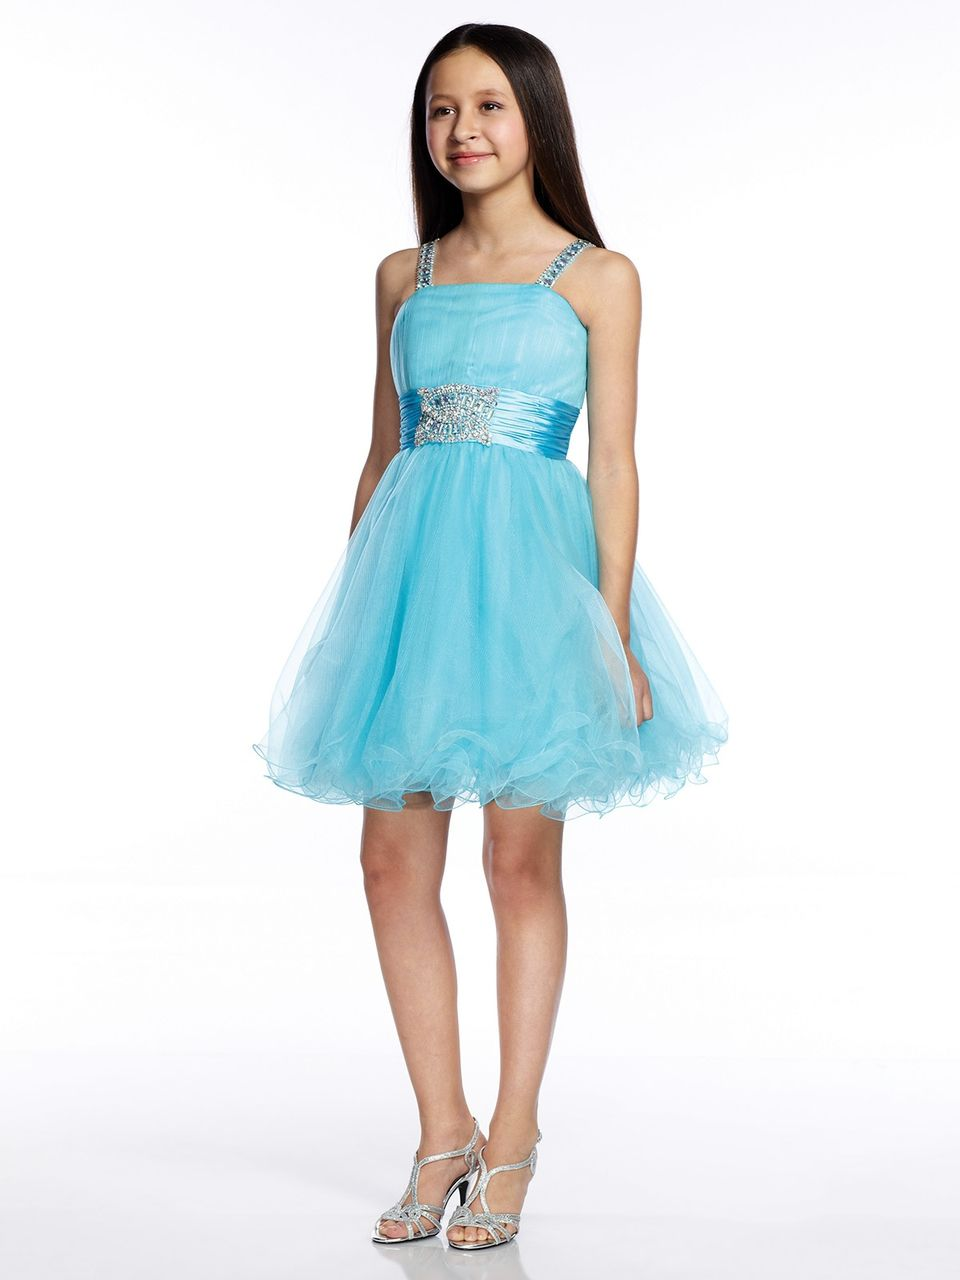 Lexie Girls Cocktail Dress Tw21546